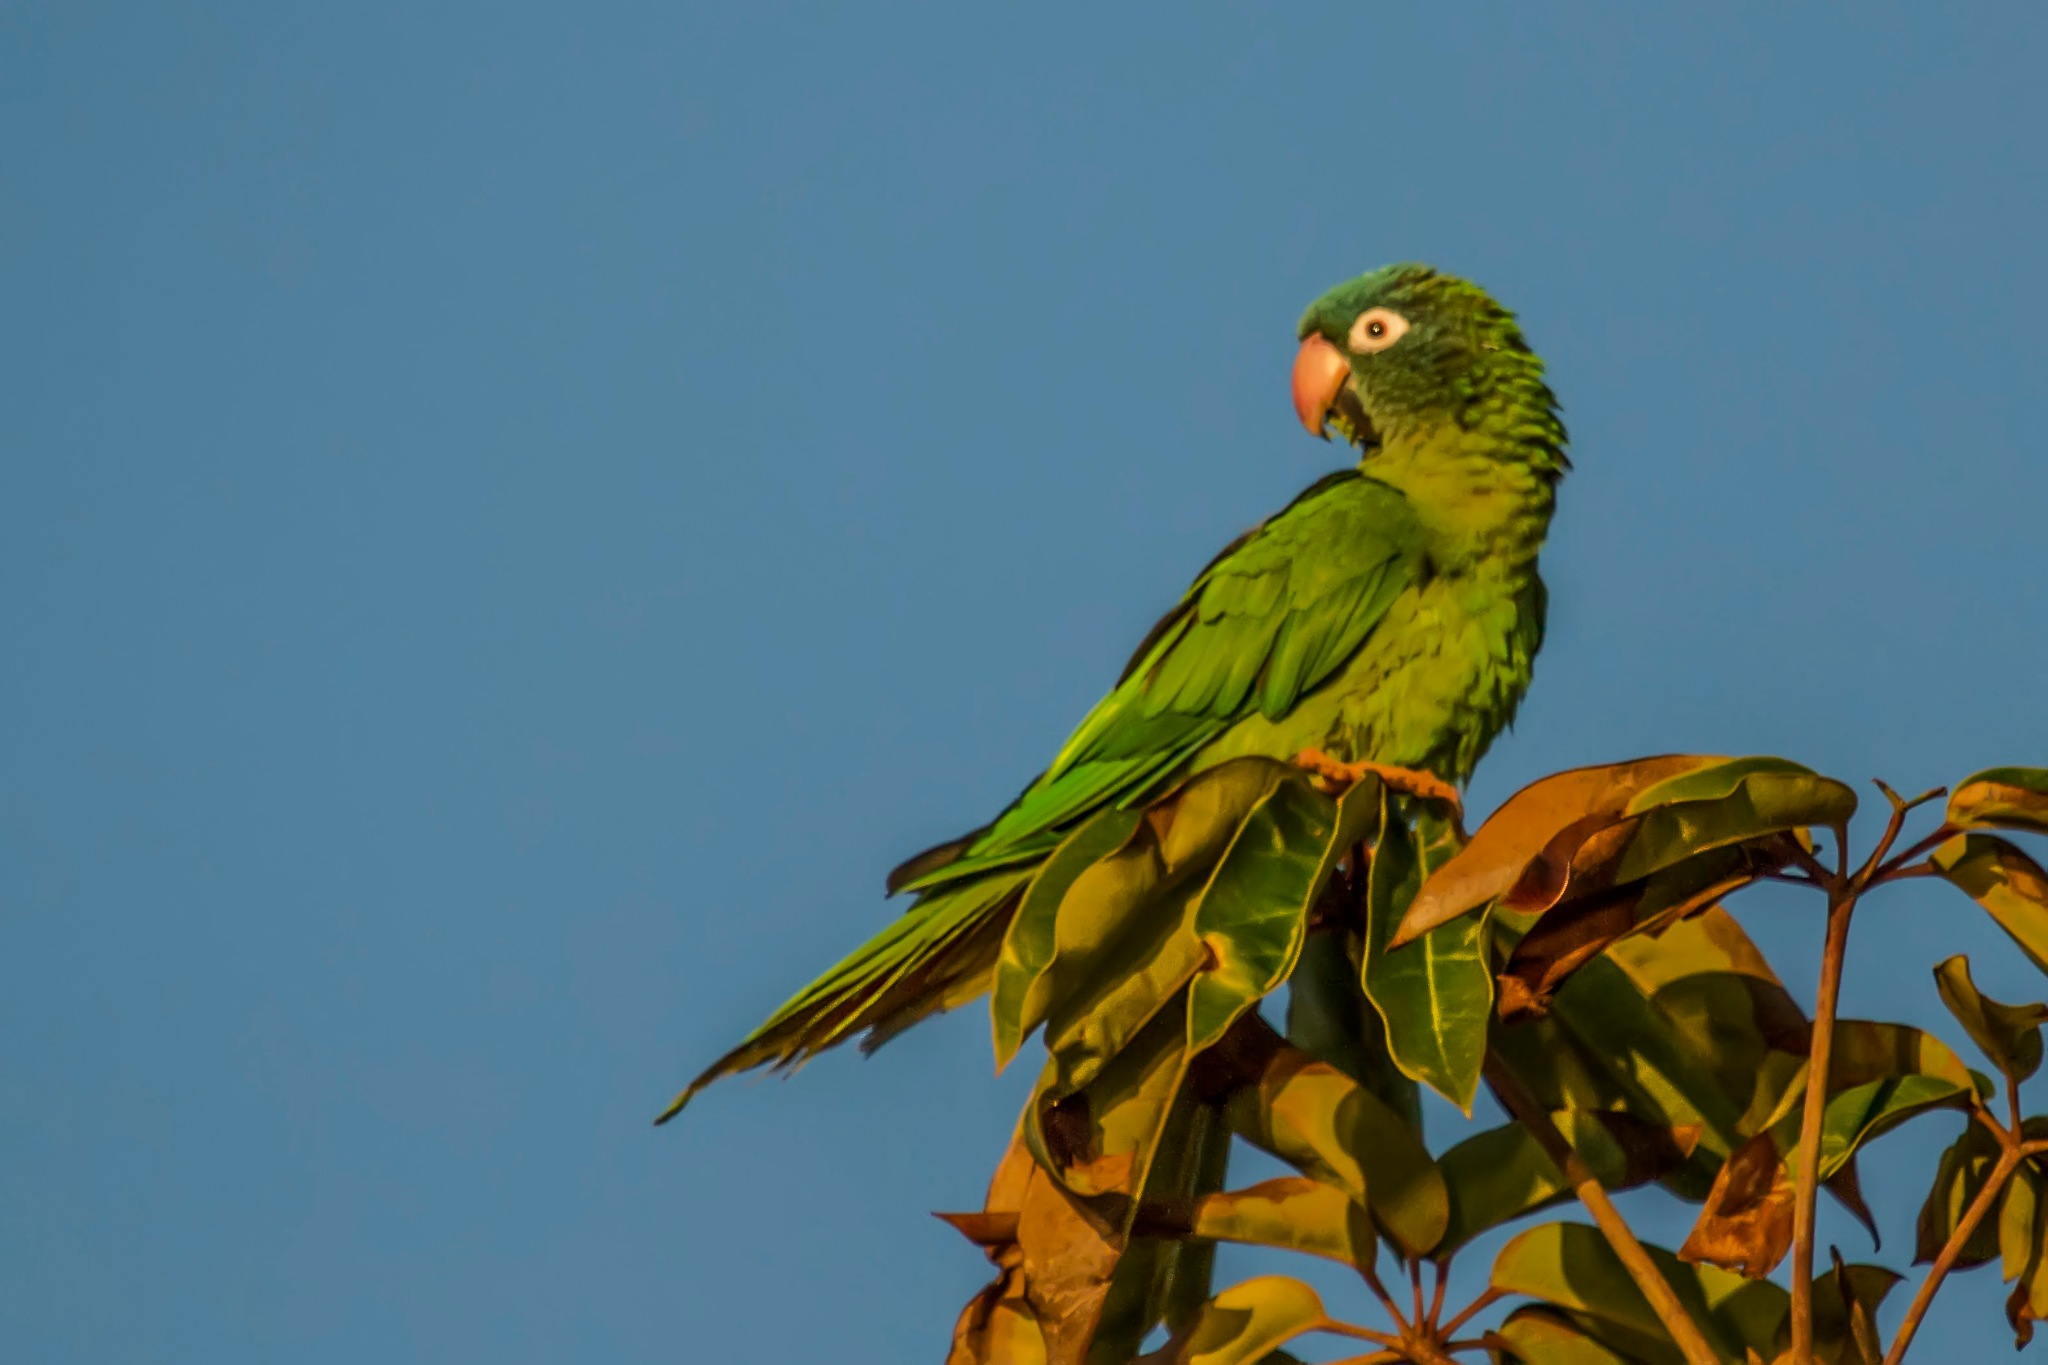 The blue-crowned parakeet, blue-crowned conure, or sharp-tailed conure (Thectocercus acuticaudatus). by sarvikpytt